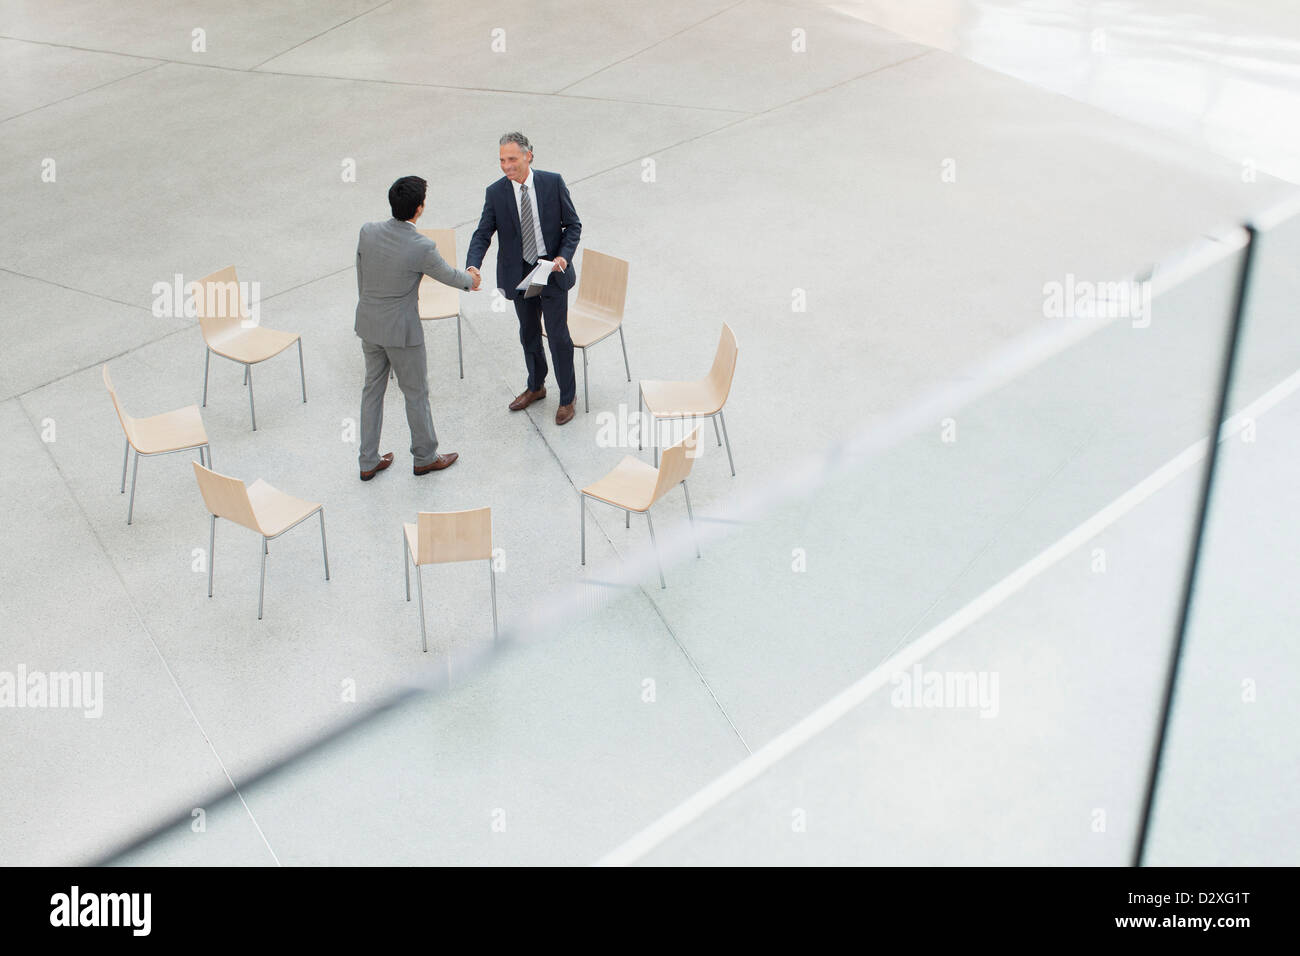 Circle of chairs around businessmen shaking hands - Stock Image